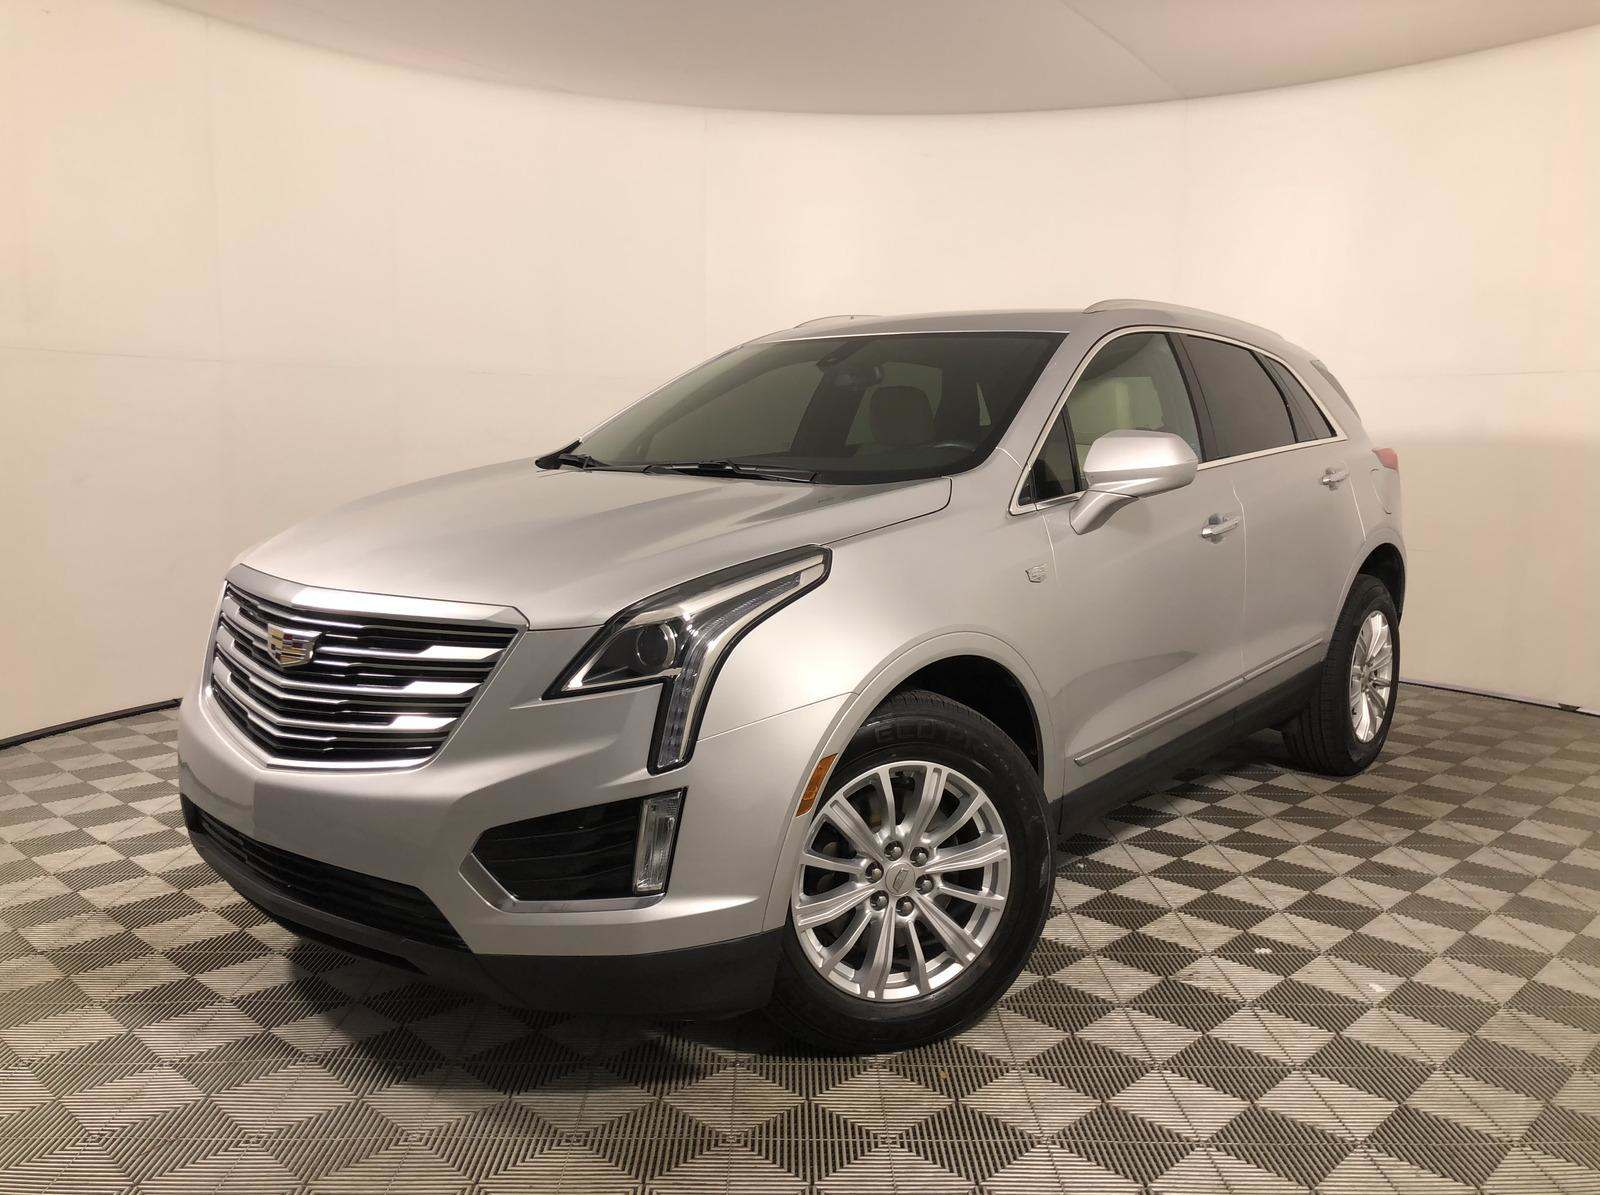 Used 2018 Cadillac XT5 For Sale ($23,480) | Vroom